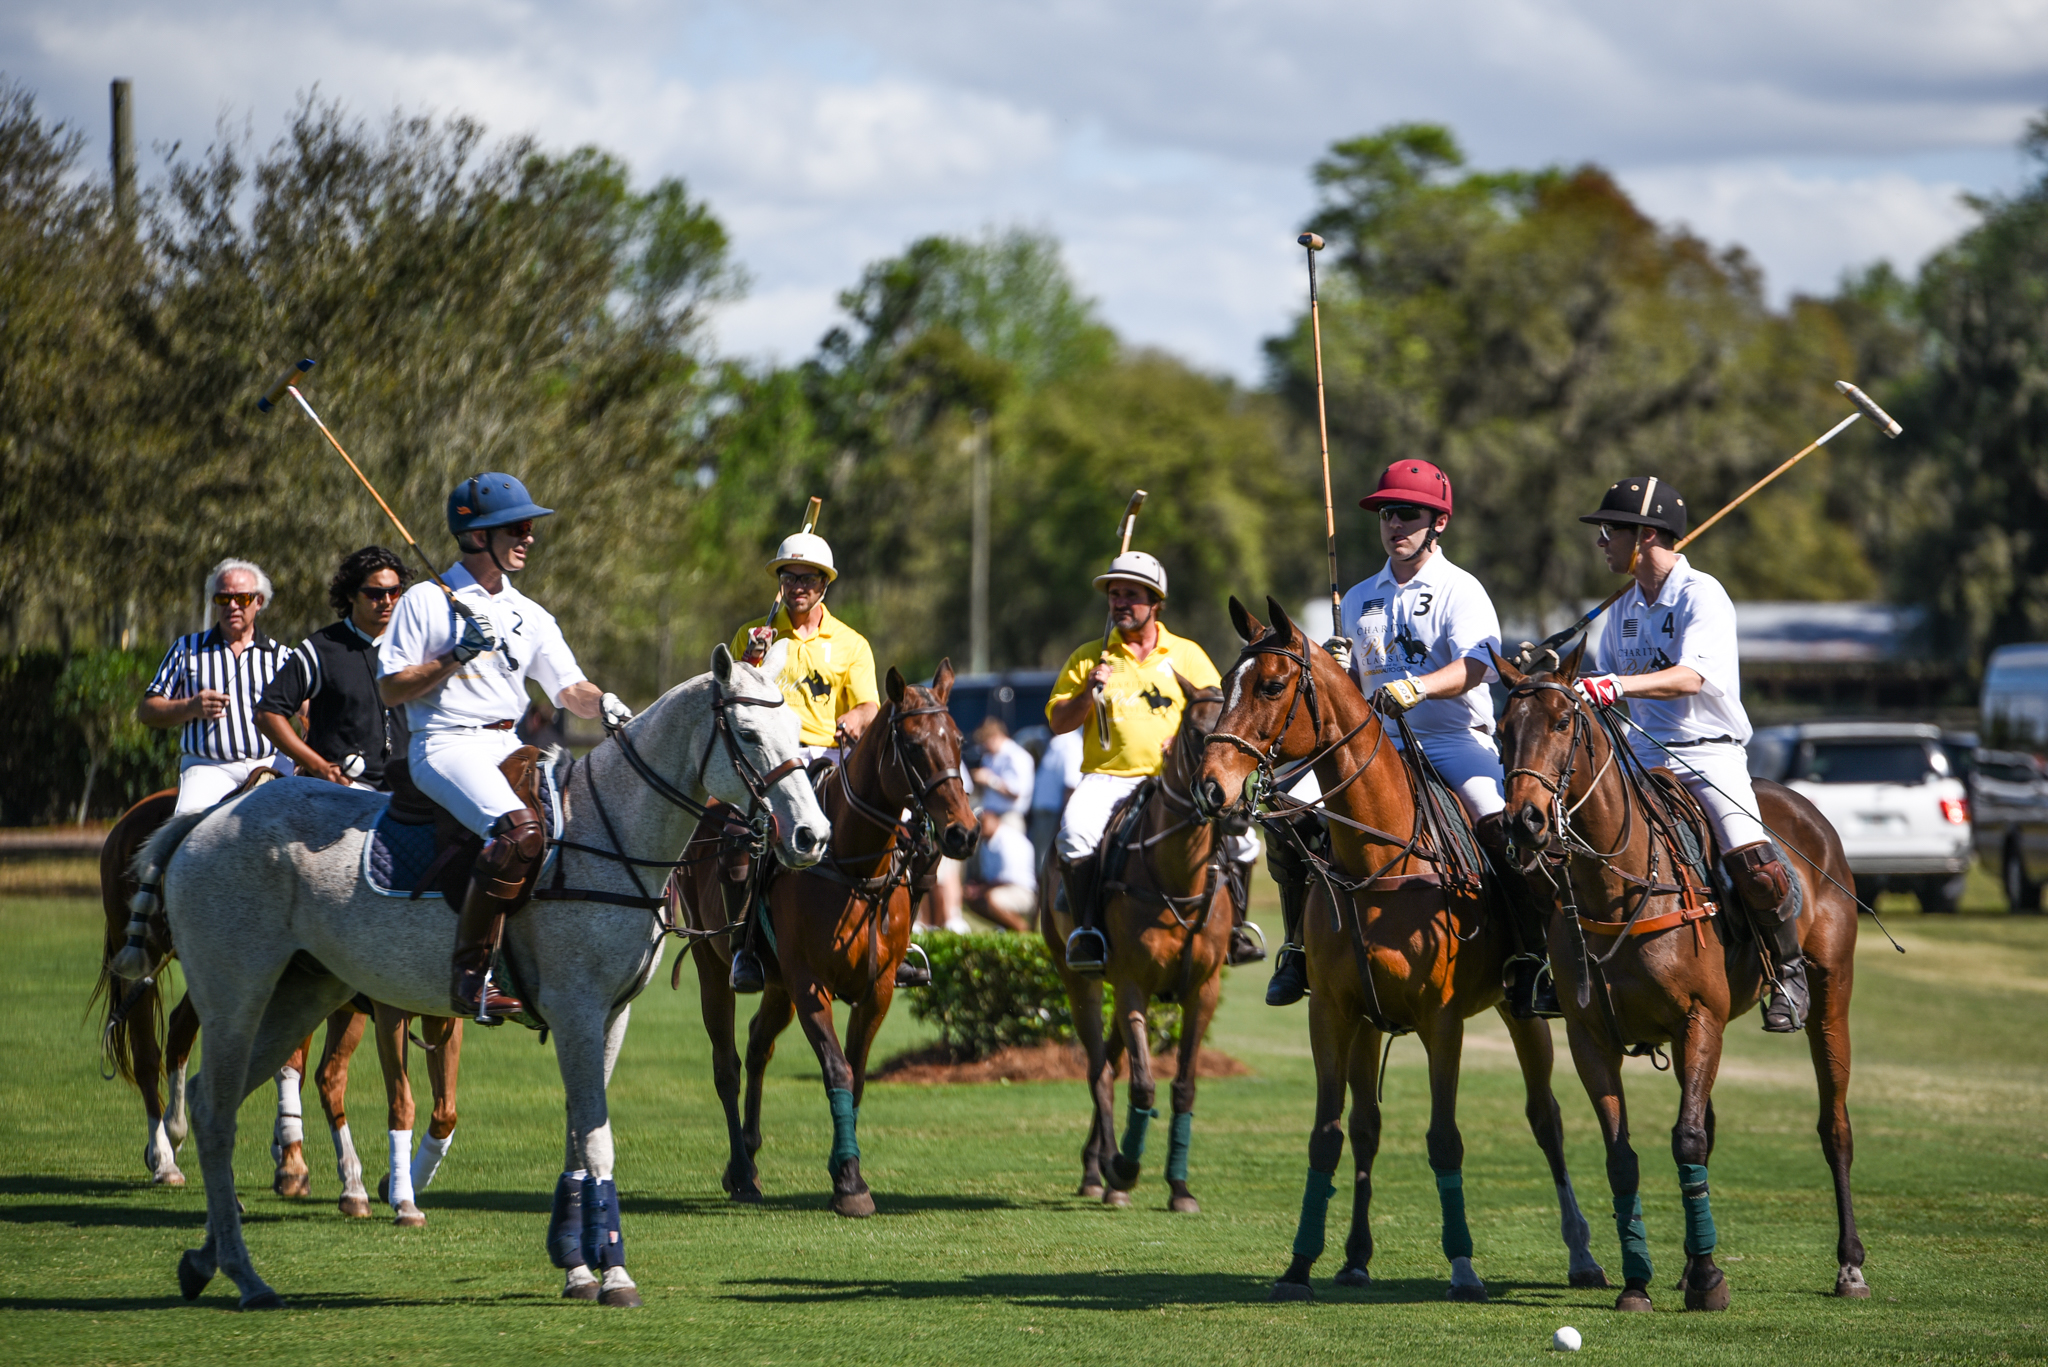 CharityPoloClassic2017-event-36.jpg